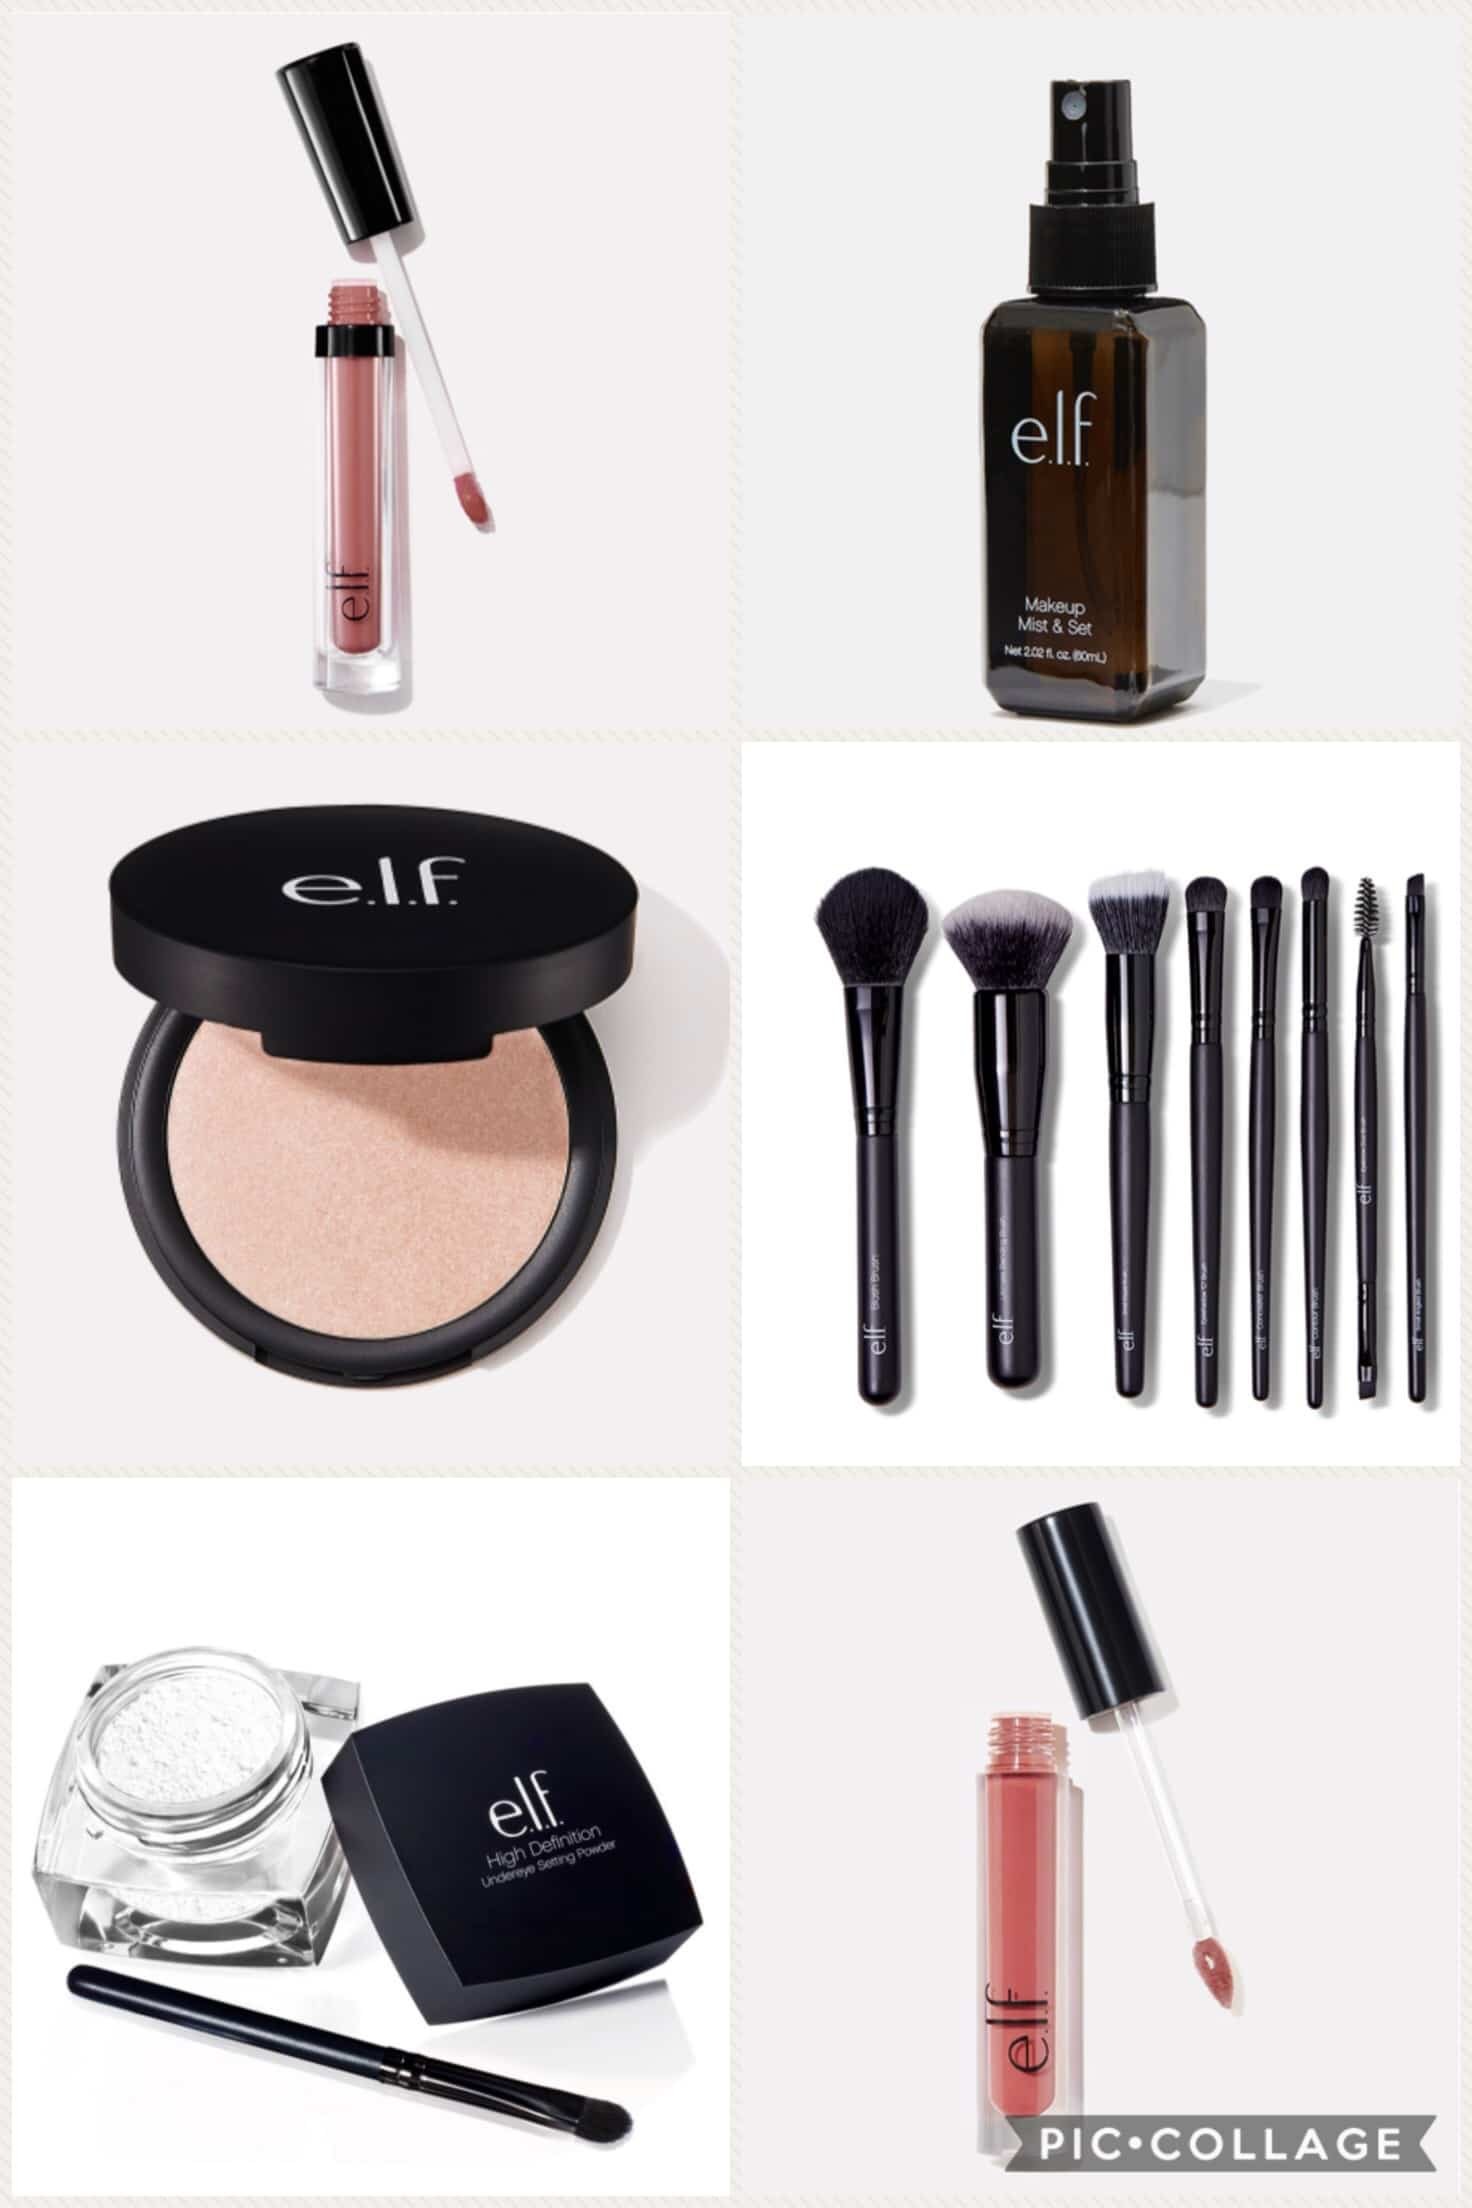 ELF makeup products on sale